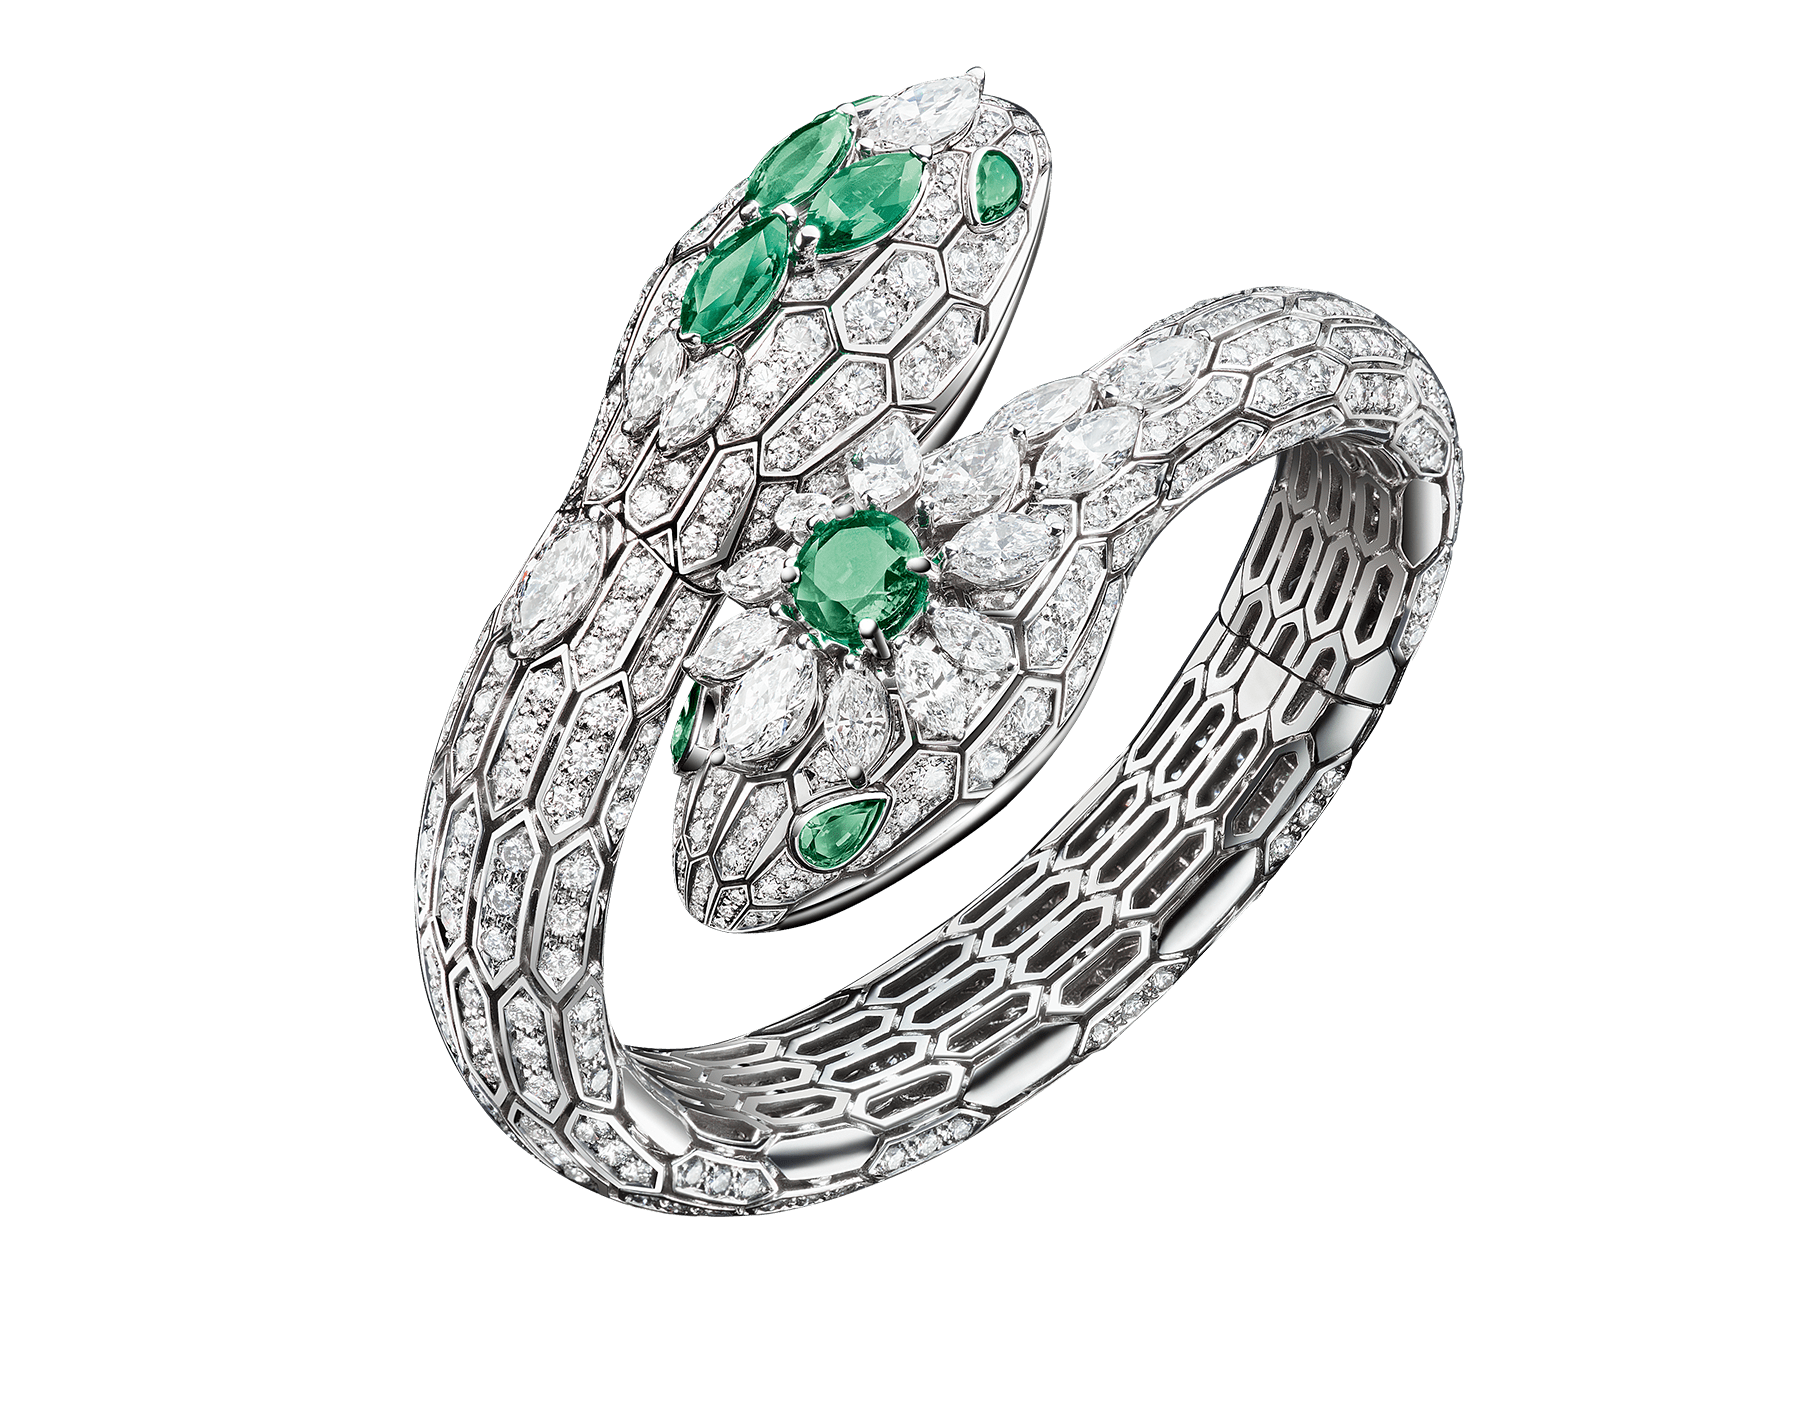 Serpenti two-headed watch with 18 kt white gold heads set with brilliant cut and marquise cut diamonds, marquise cut and one round cut emeralds, 18 kt white gold case, dial and bracelet, all set with brilliant cut diamonds. 102784 image 1